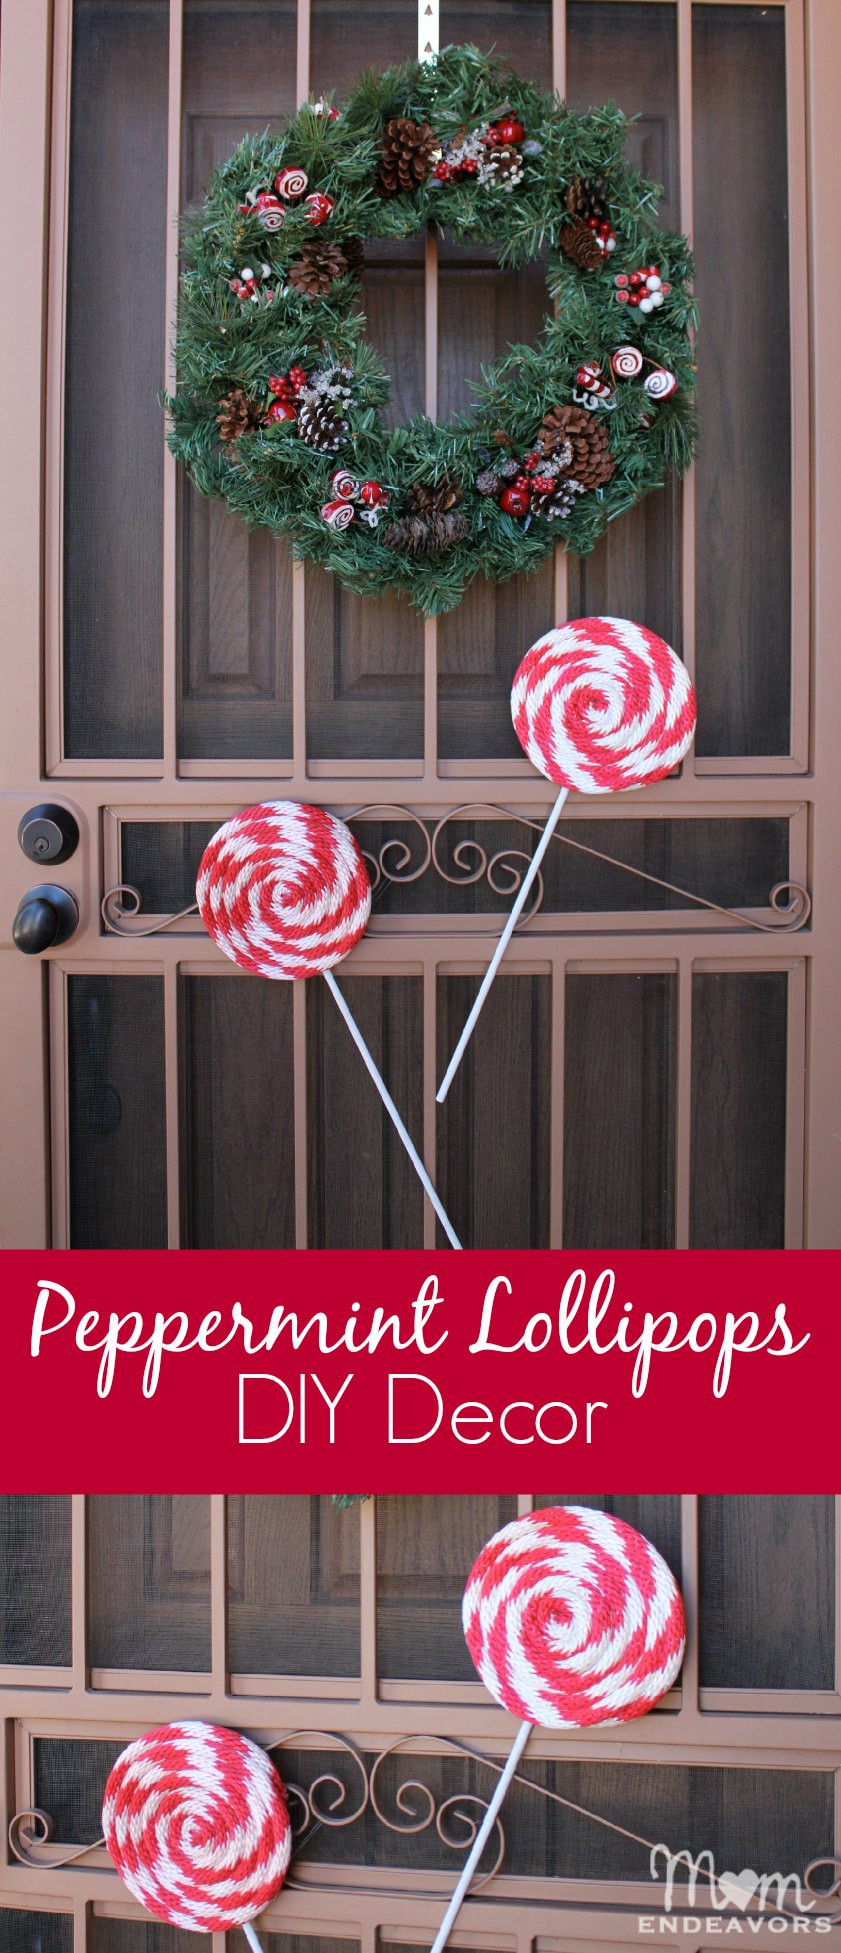 Best ideas about Christmas DIY Decorations . Save or Pin DIY Peppermint Lollipops Christmas Decor Now.